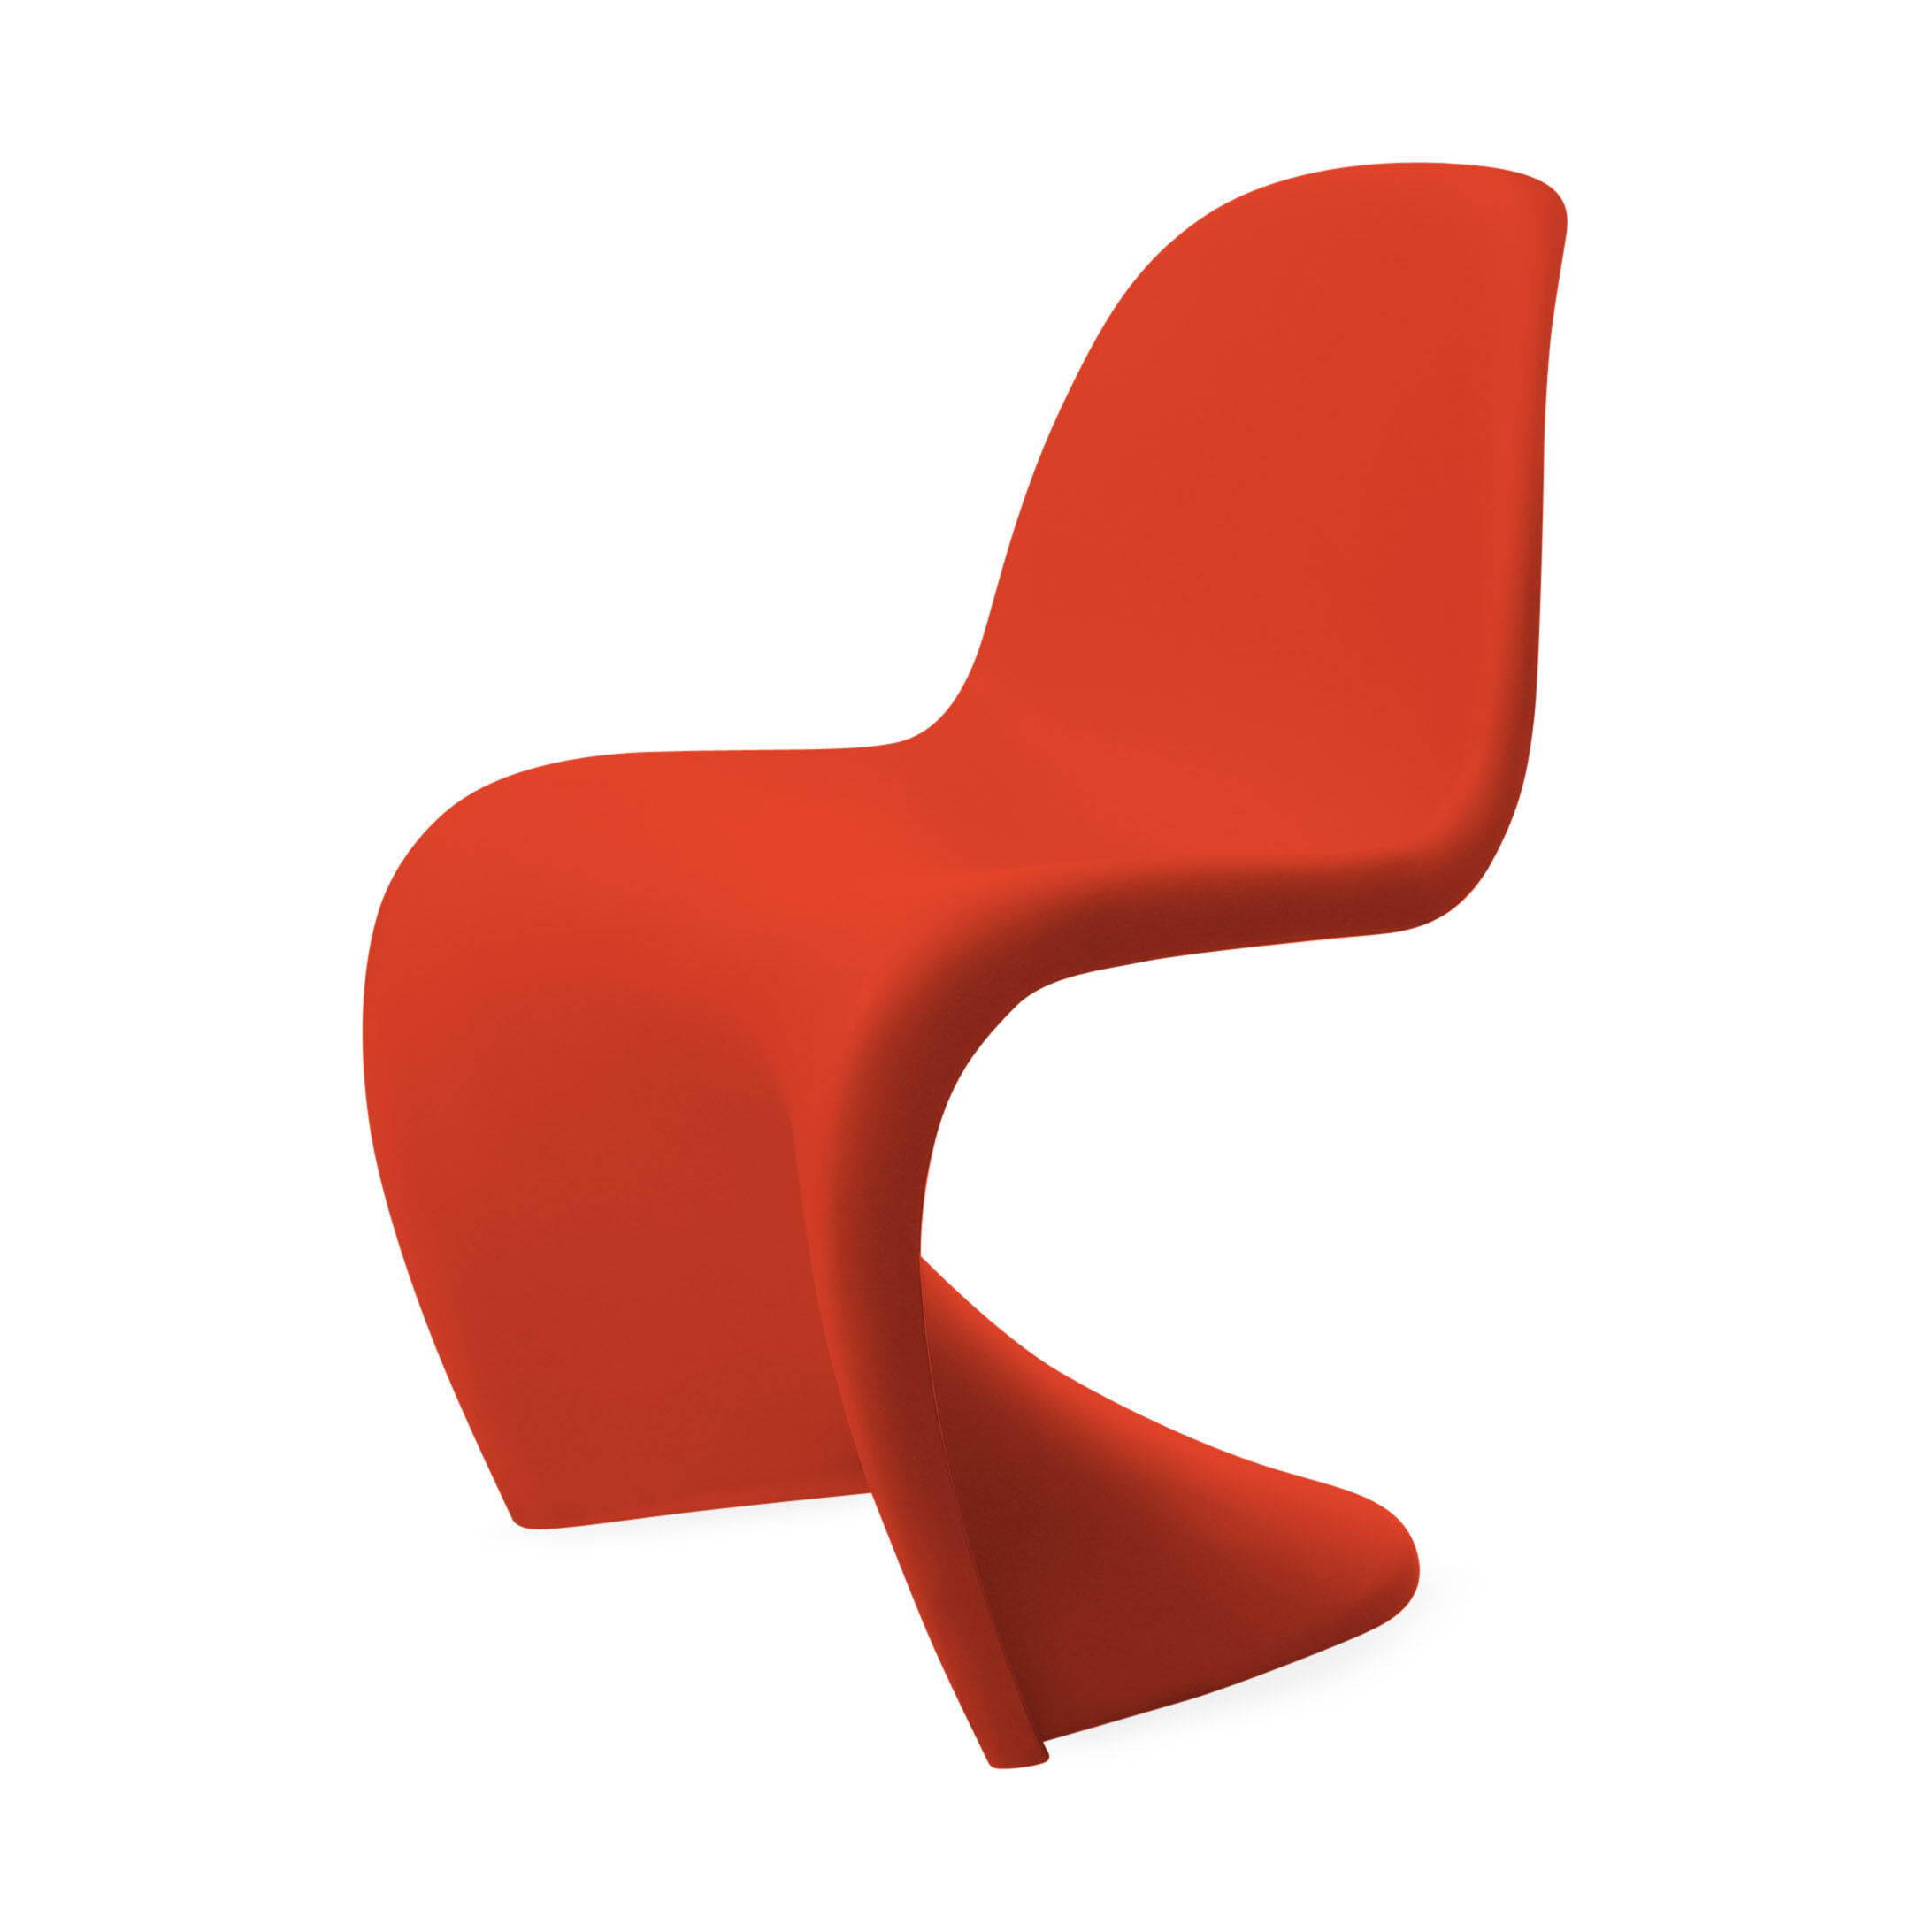 panton chair review wheelchair gifts red moma design store in color